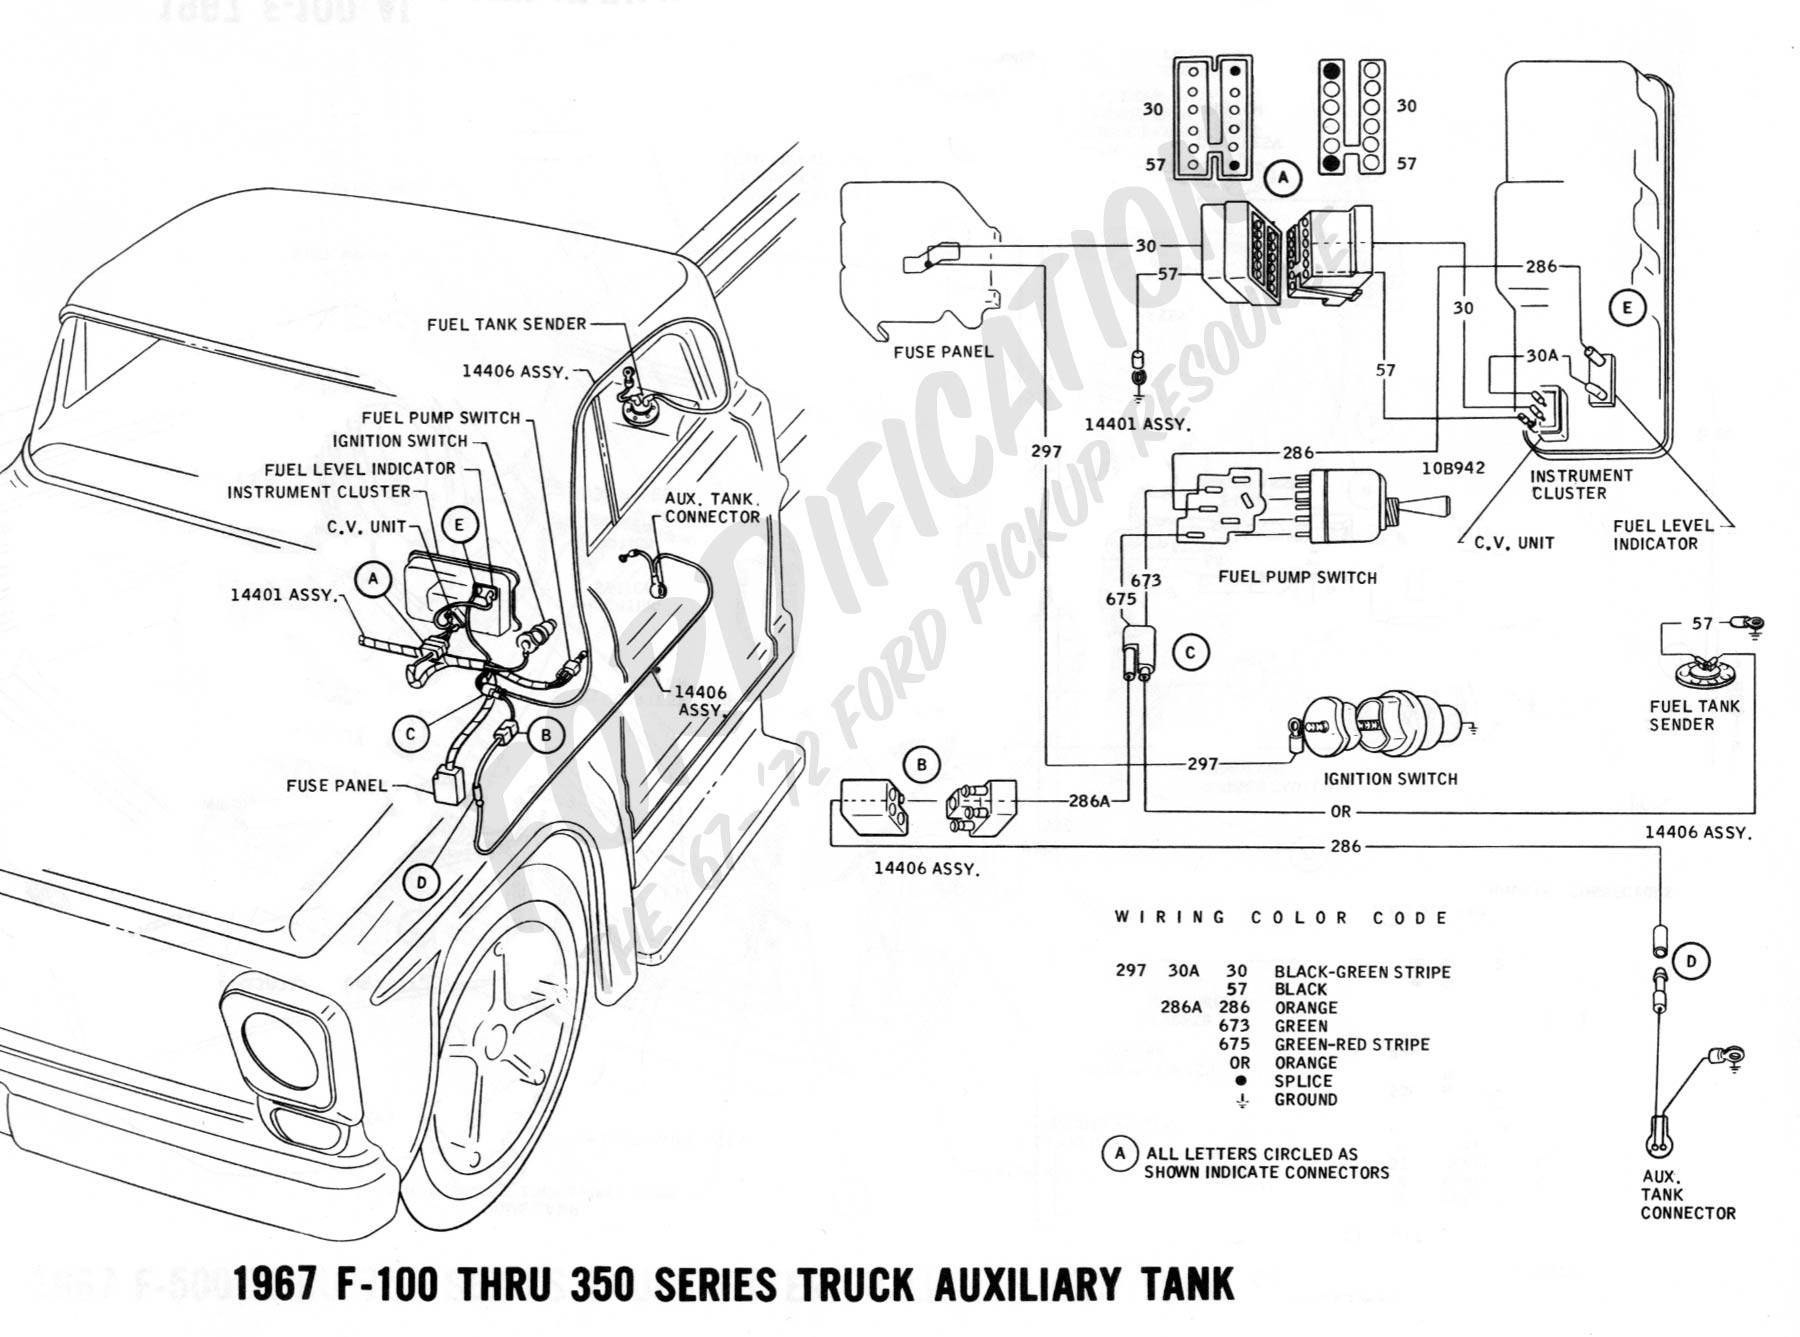 1992 Ford F150 Parts Diagram My Wiring Diagram